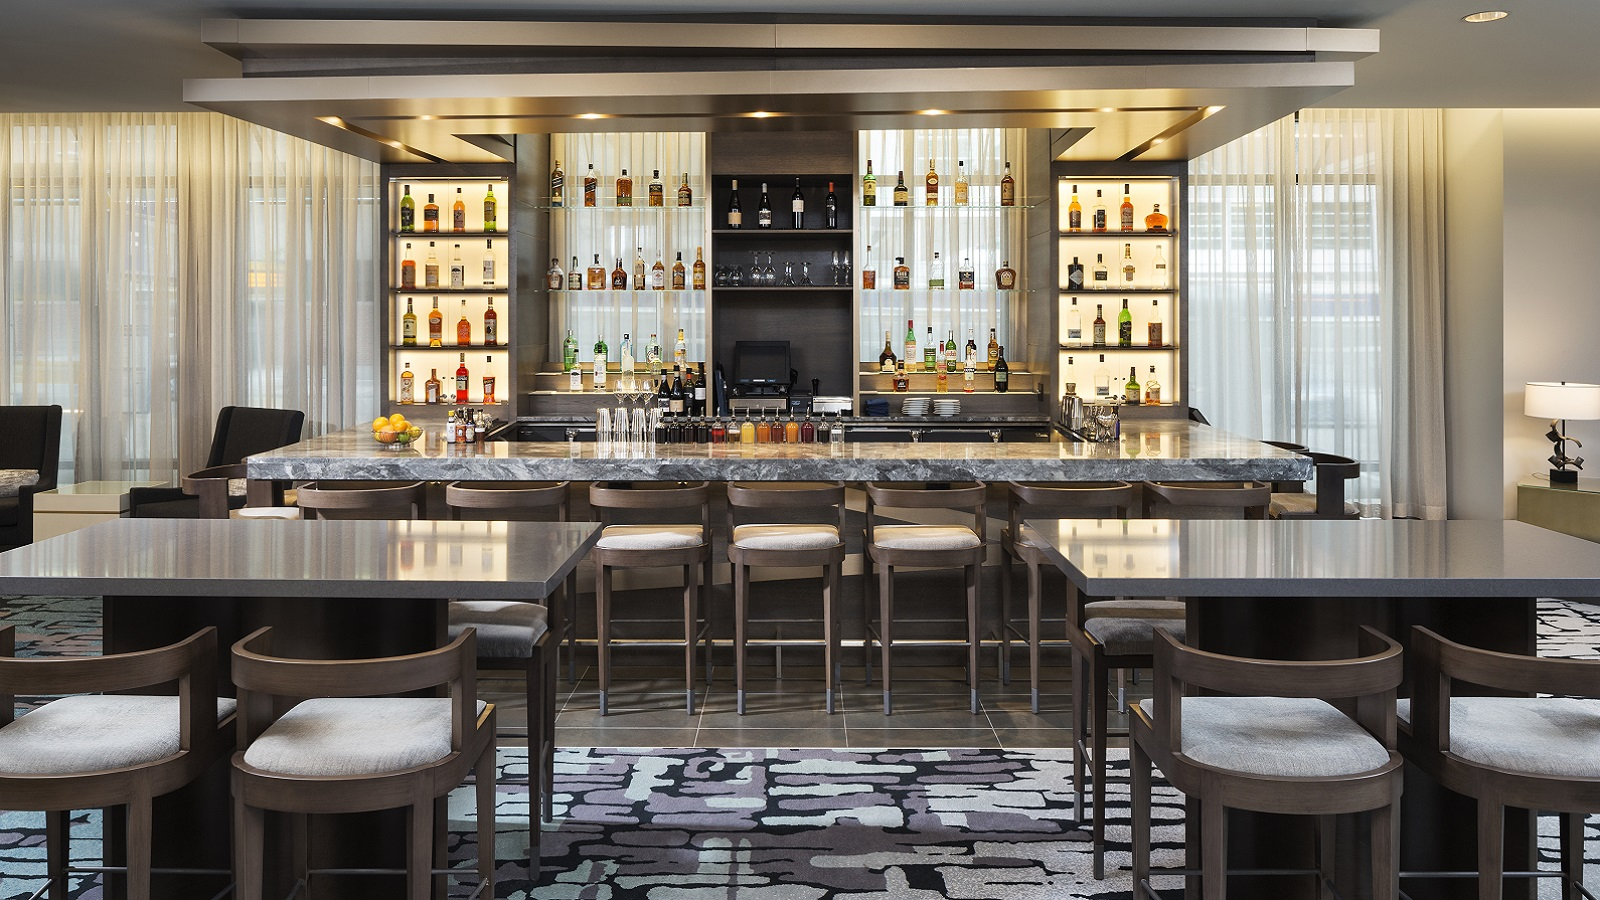 Venetia Lounge | Hotel Ivy, A Luxury Collection Hotel, Minneapolis